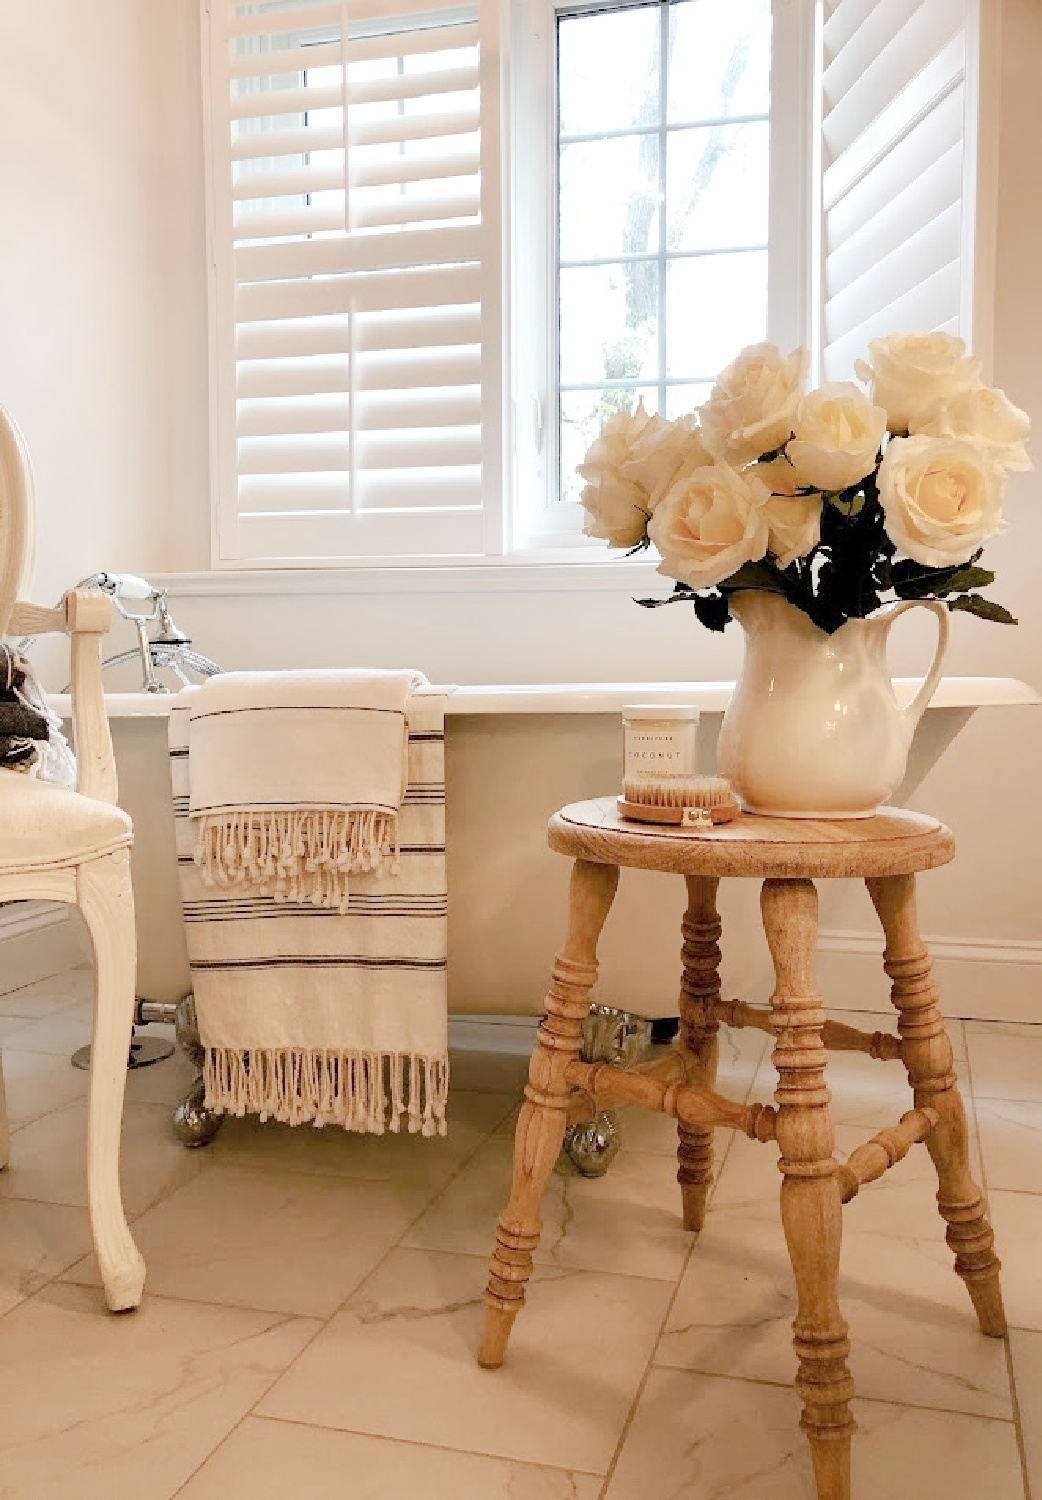 French country white bathroom with maids tub, accent stool, and white roses - Hello Lovely.